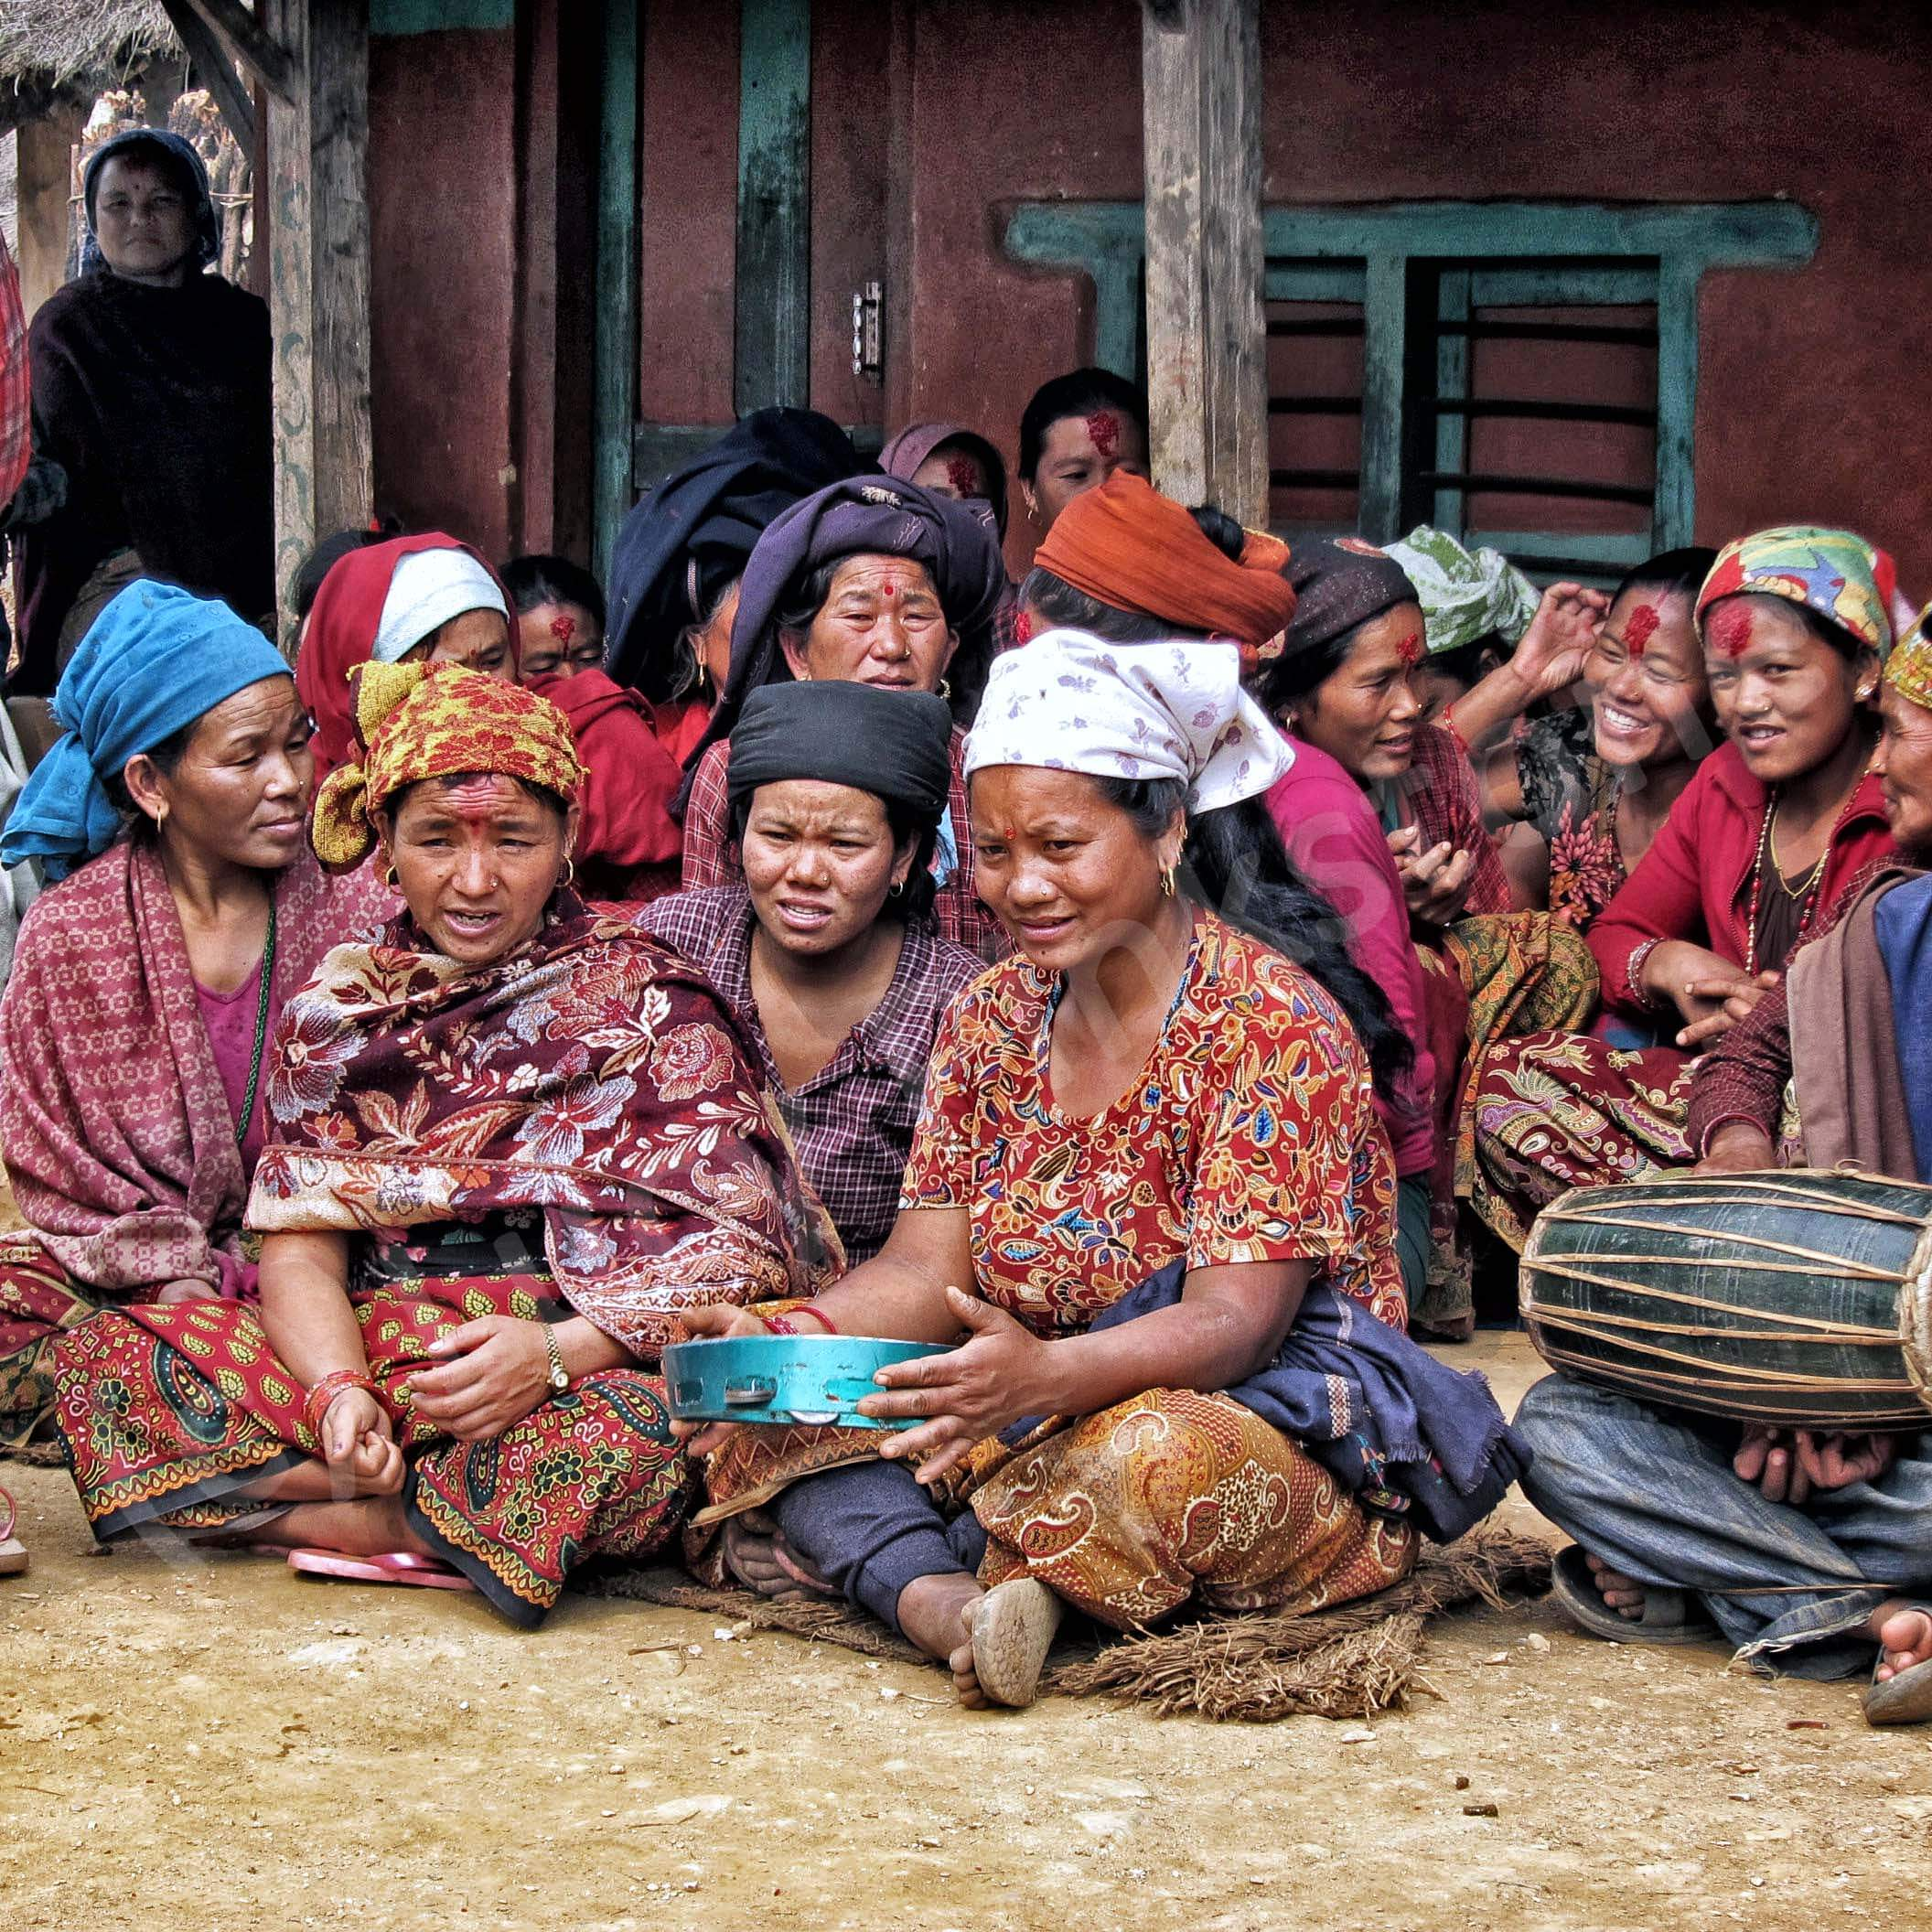 Travel photo: Women in village in Nepal playing musical instruments